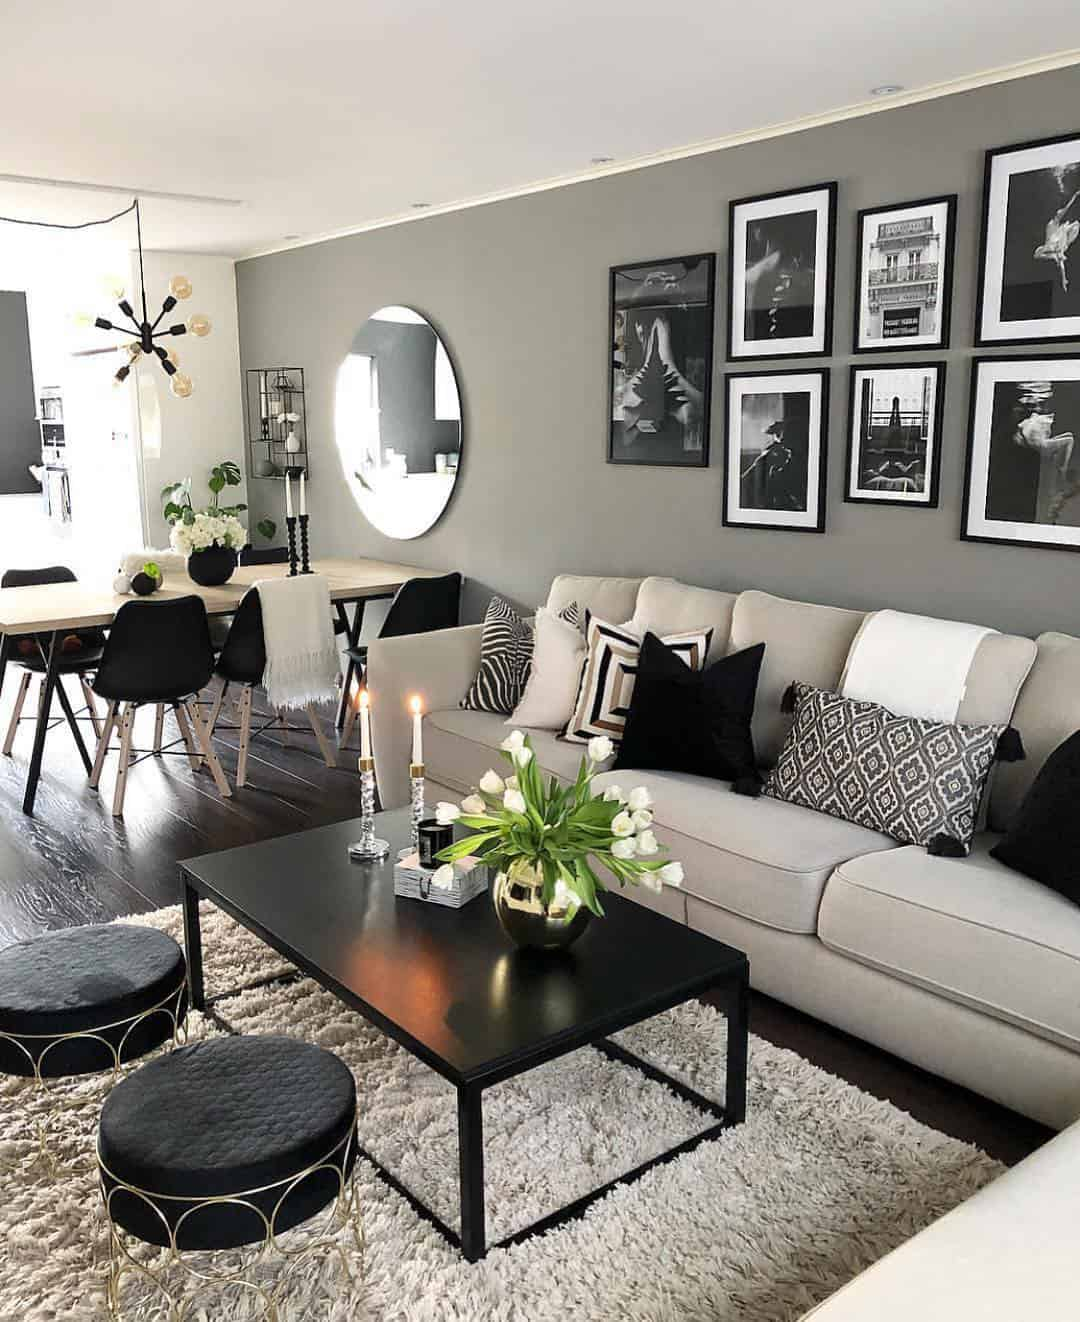 Top 4 Stylish Trends and Ideas For Living Room 2020 (40 ... on Trendy Room  id=84684